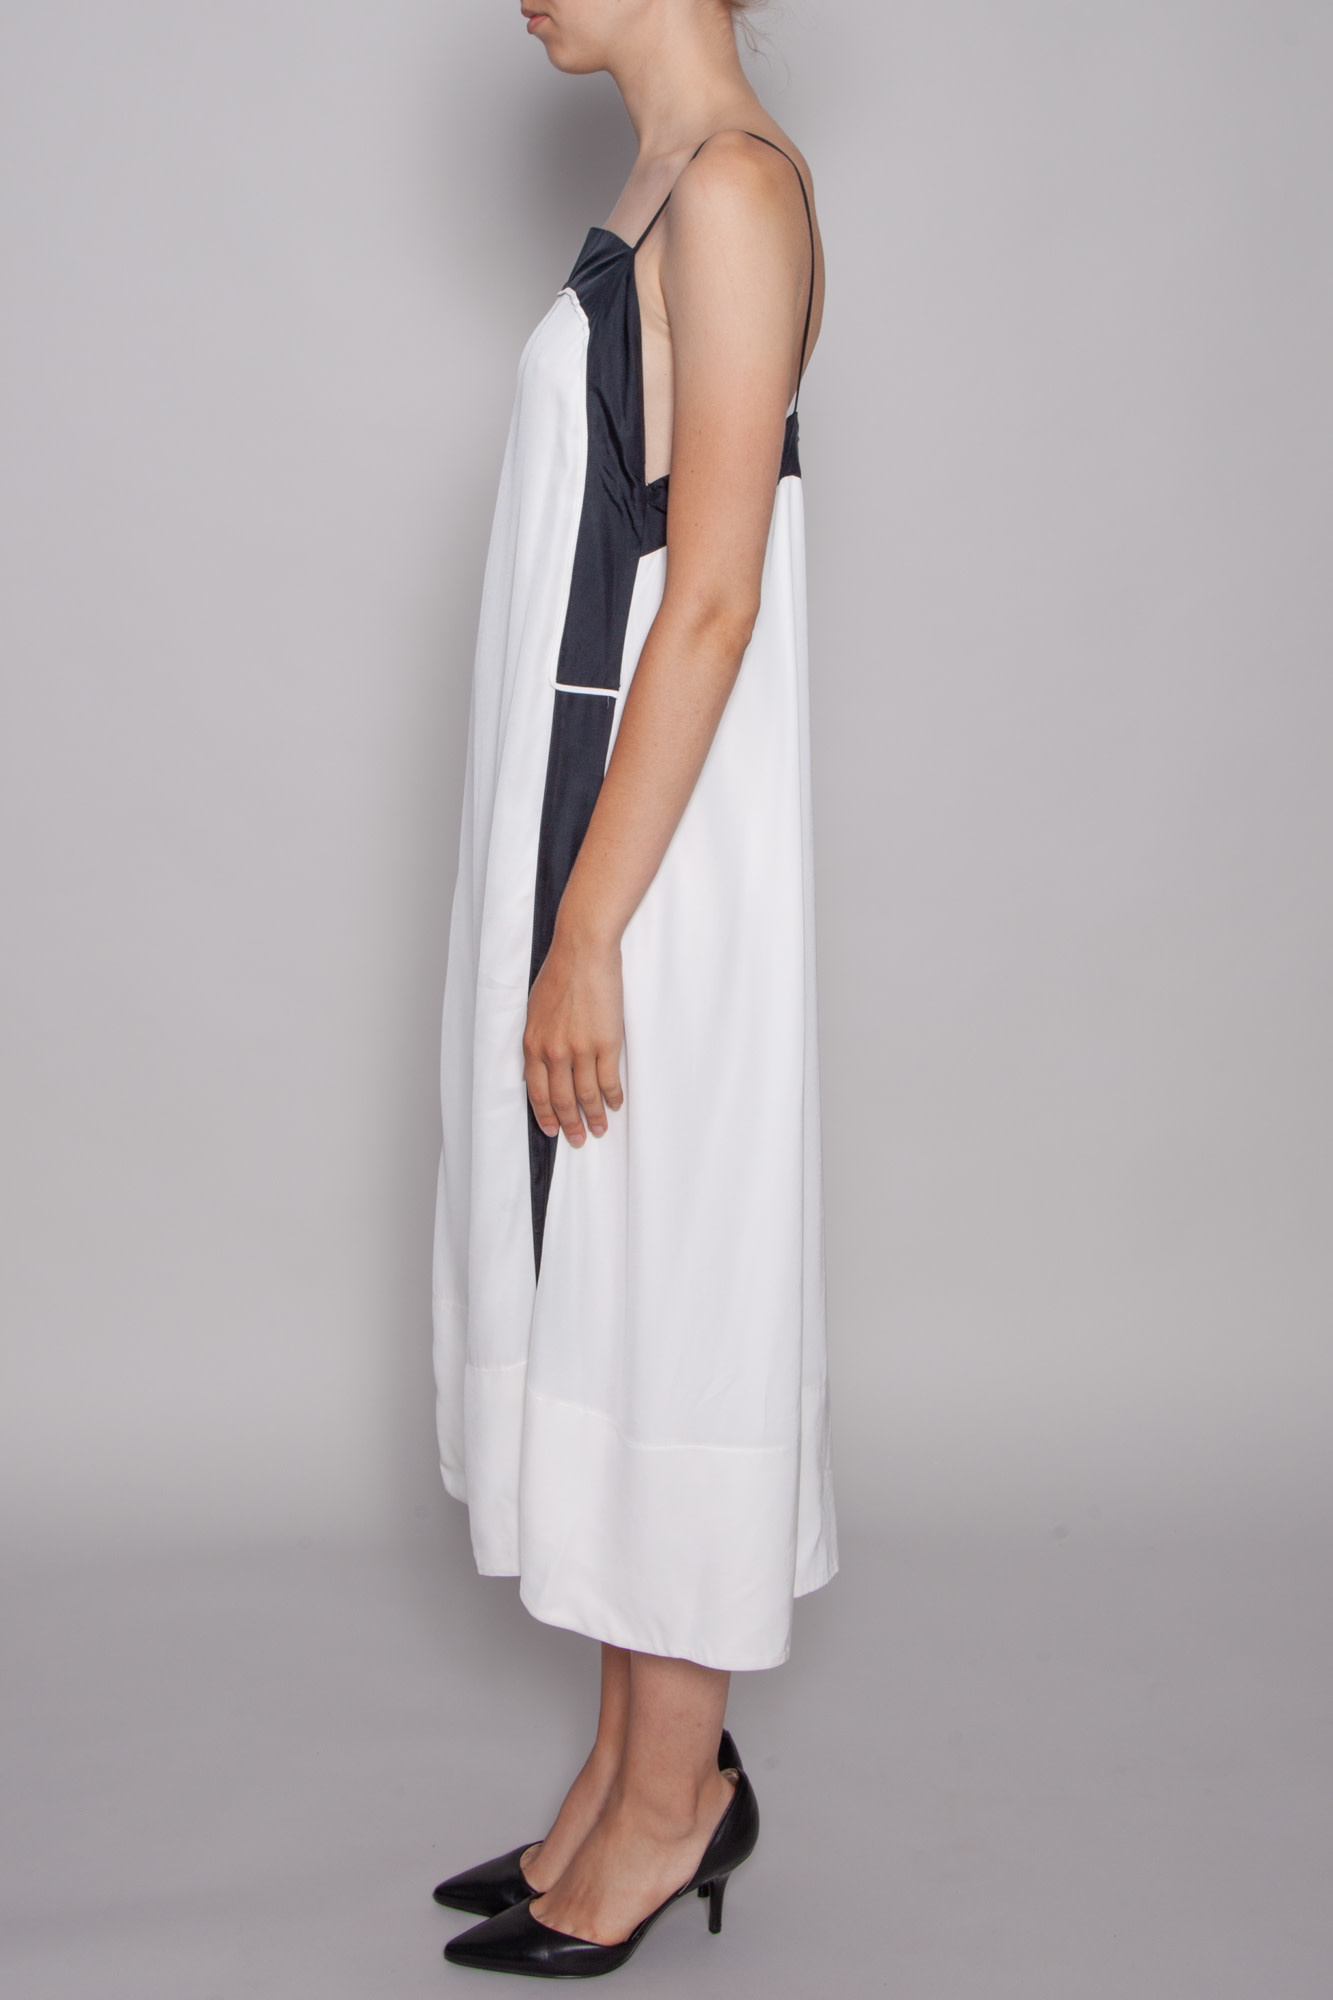 Robe Longue Blanche A Bande Noire See By Chloe Deuxieme Edition